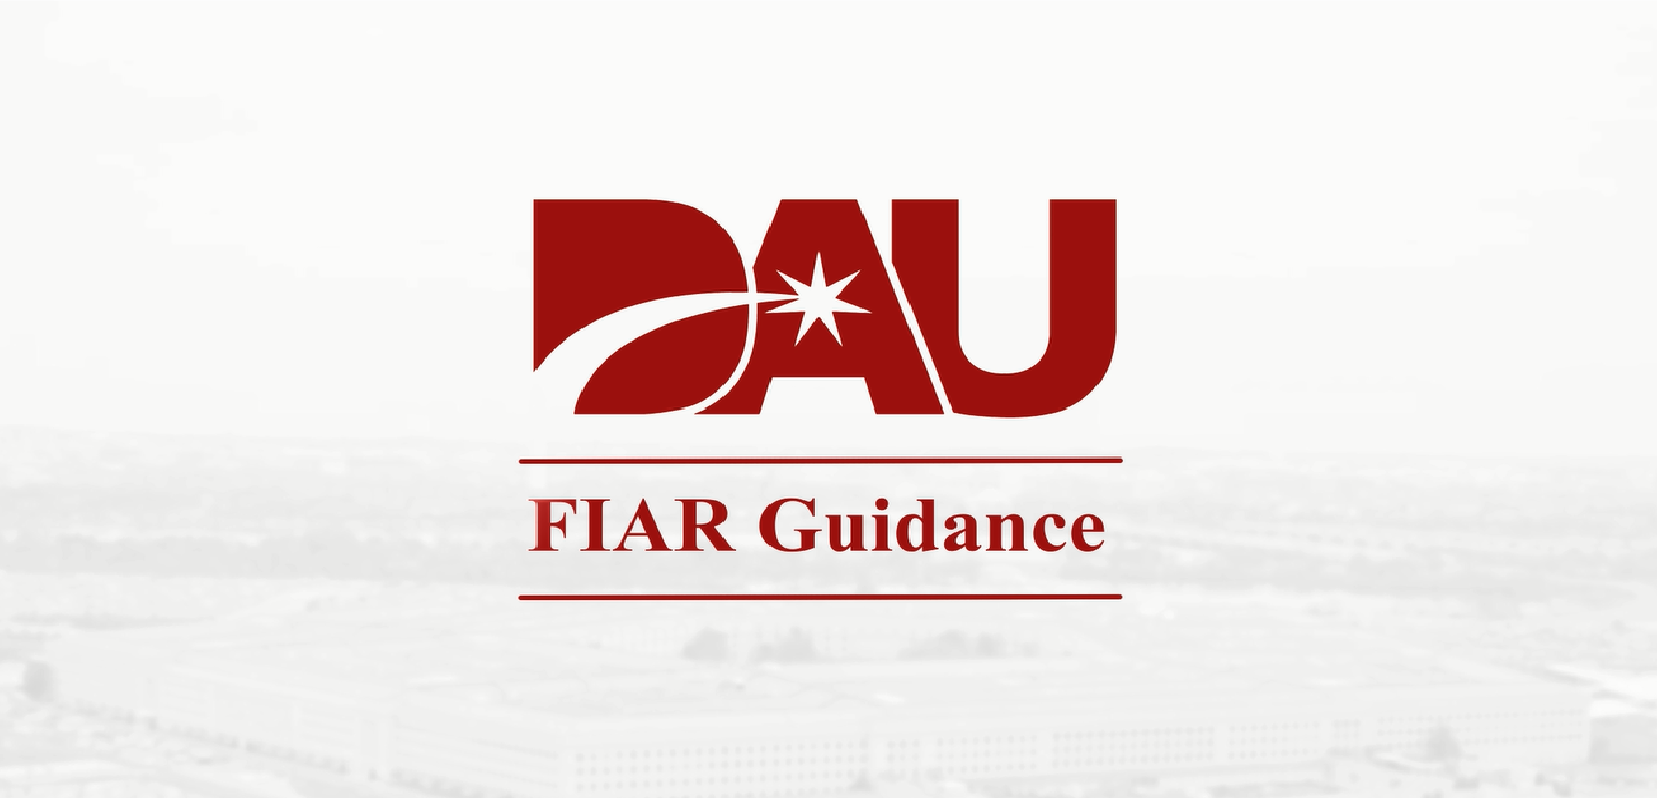 https://www.dau.mil/training/career-development/bfm/PublishingImages/FIAR Guidance V4.png